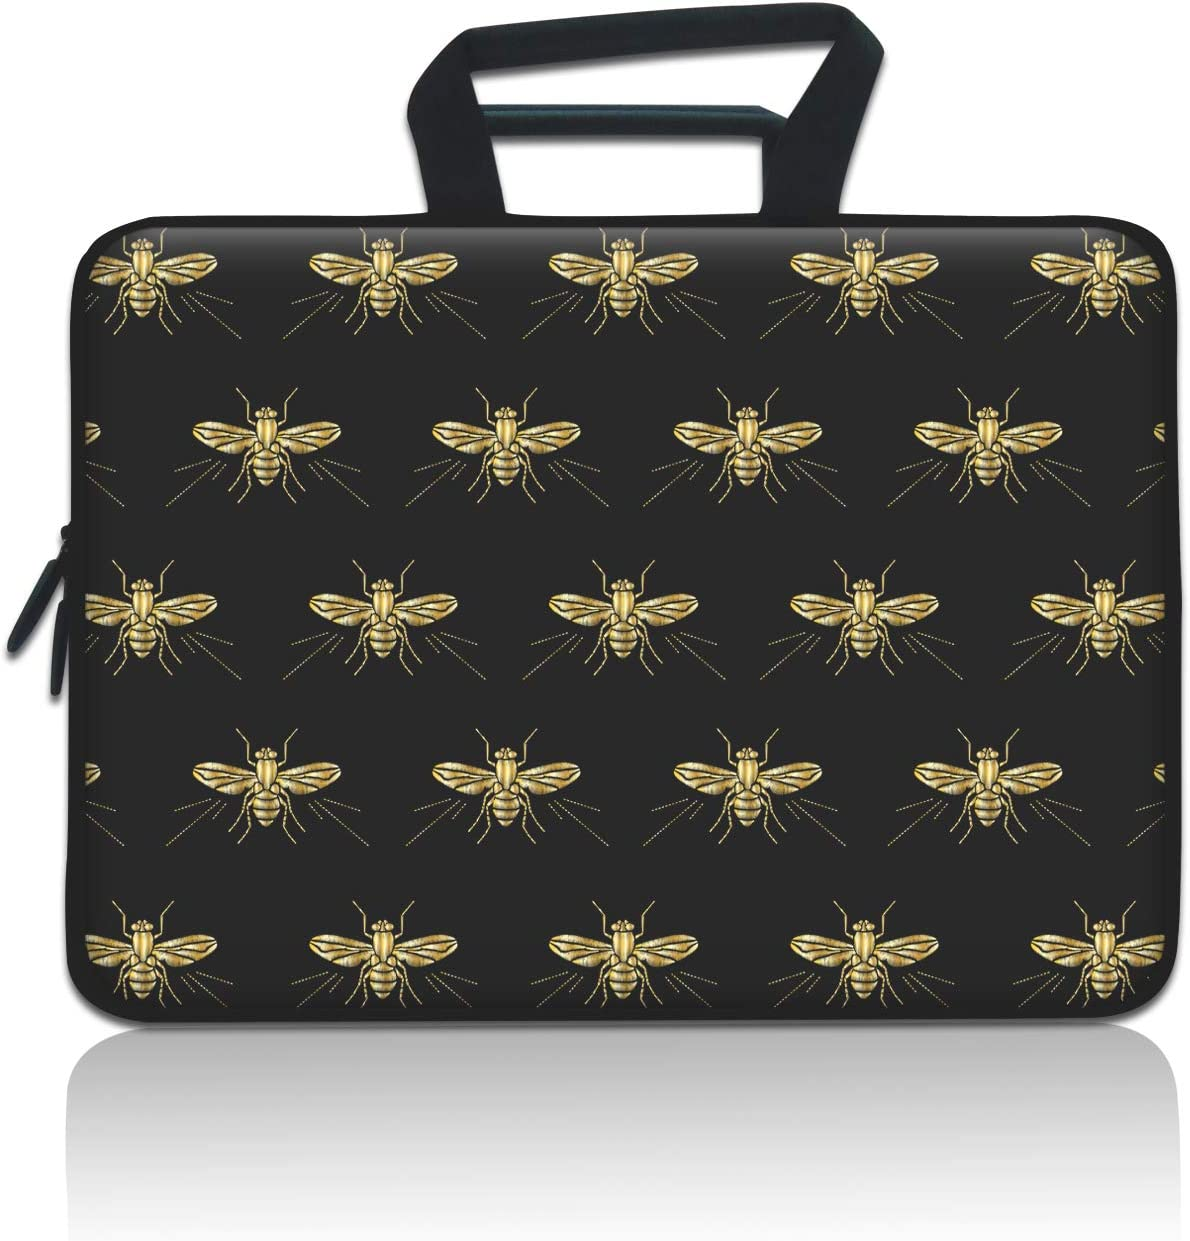 iLeadon Laptop Sleeve, 11-12.5 Inch Neoprene Laptop Carrying Case Bag with Handle Compatible MacBook Air 11/12, Chromebook R11/HP Stream/Samsung/ASUS C202/Surface Pro3/Pro4, Gold Bees